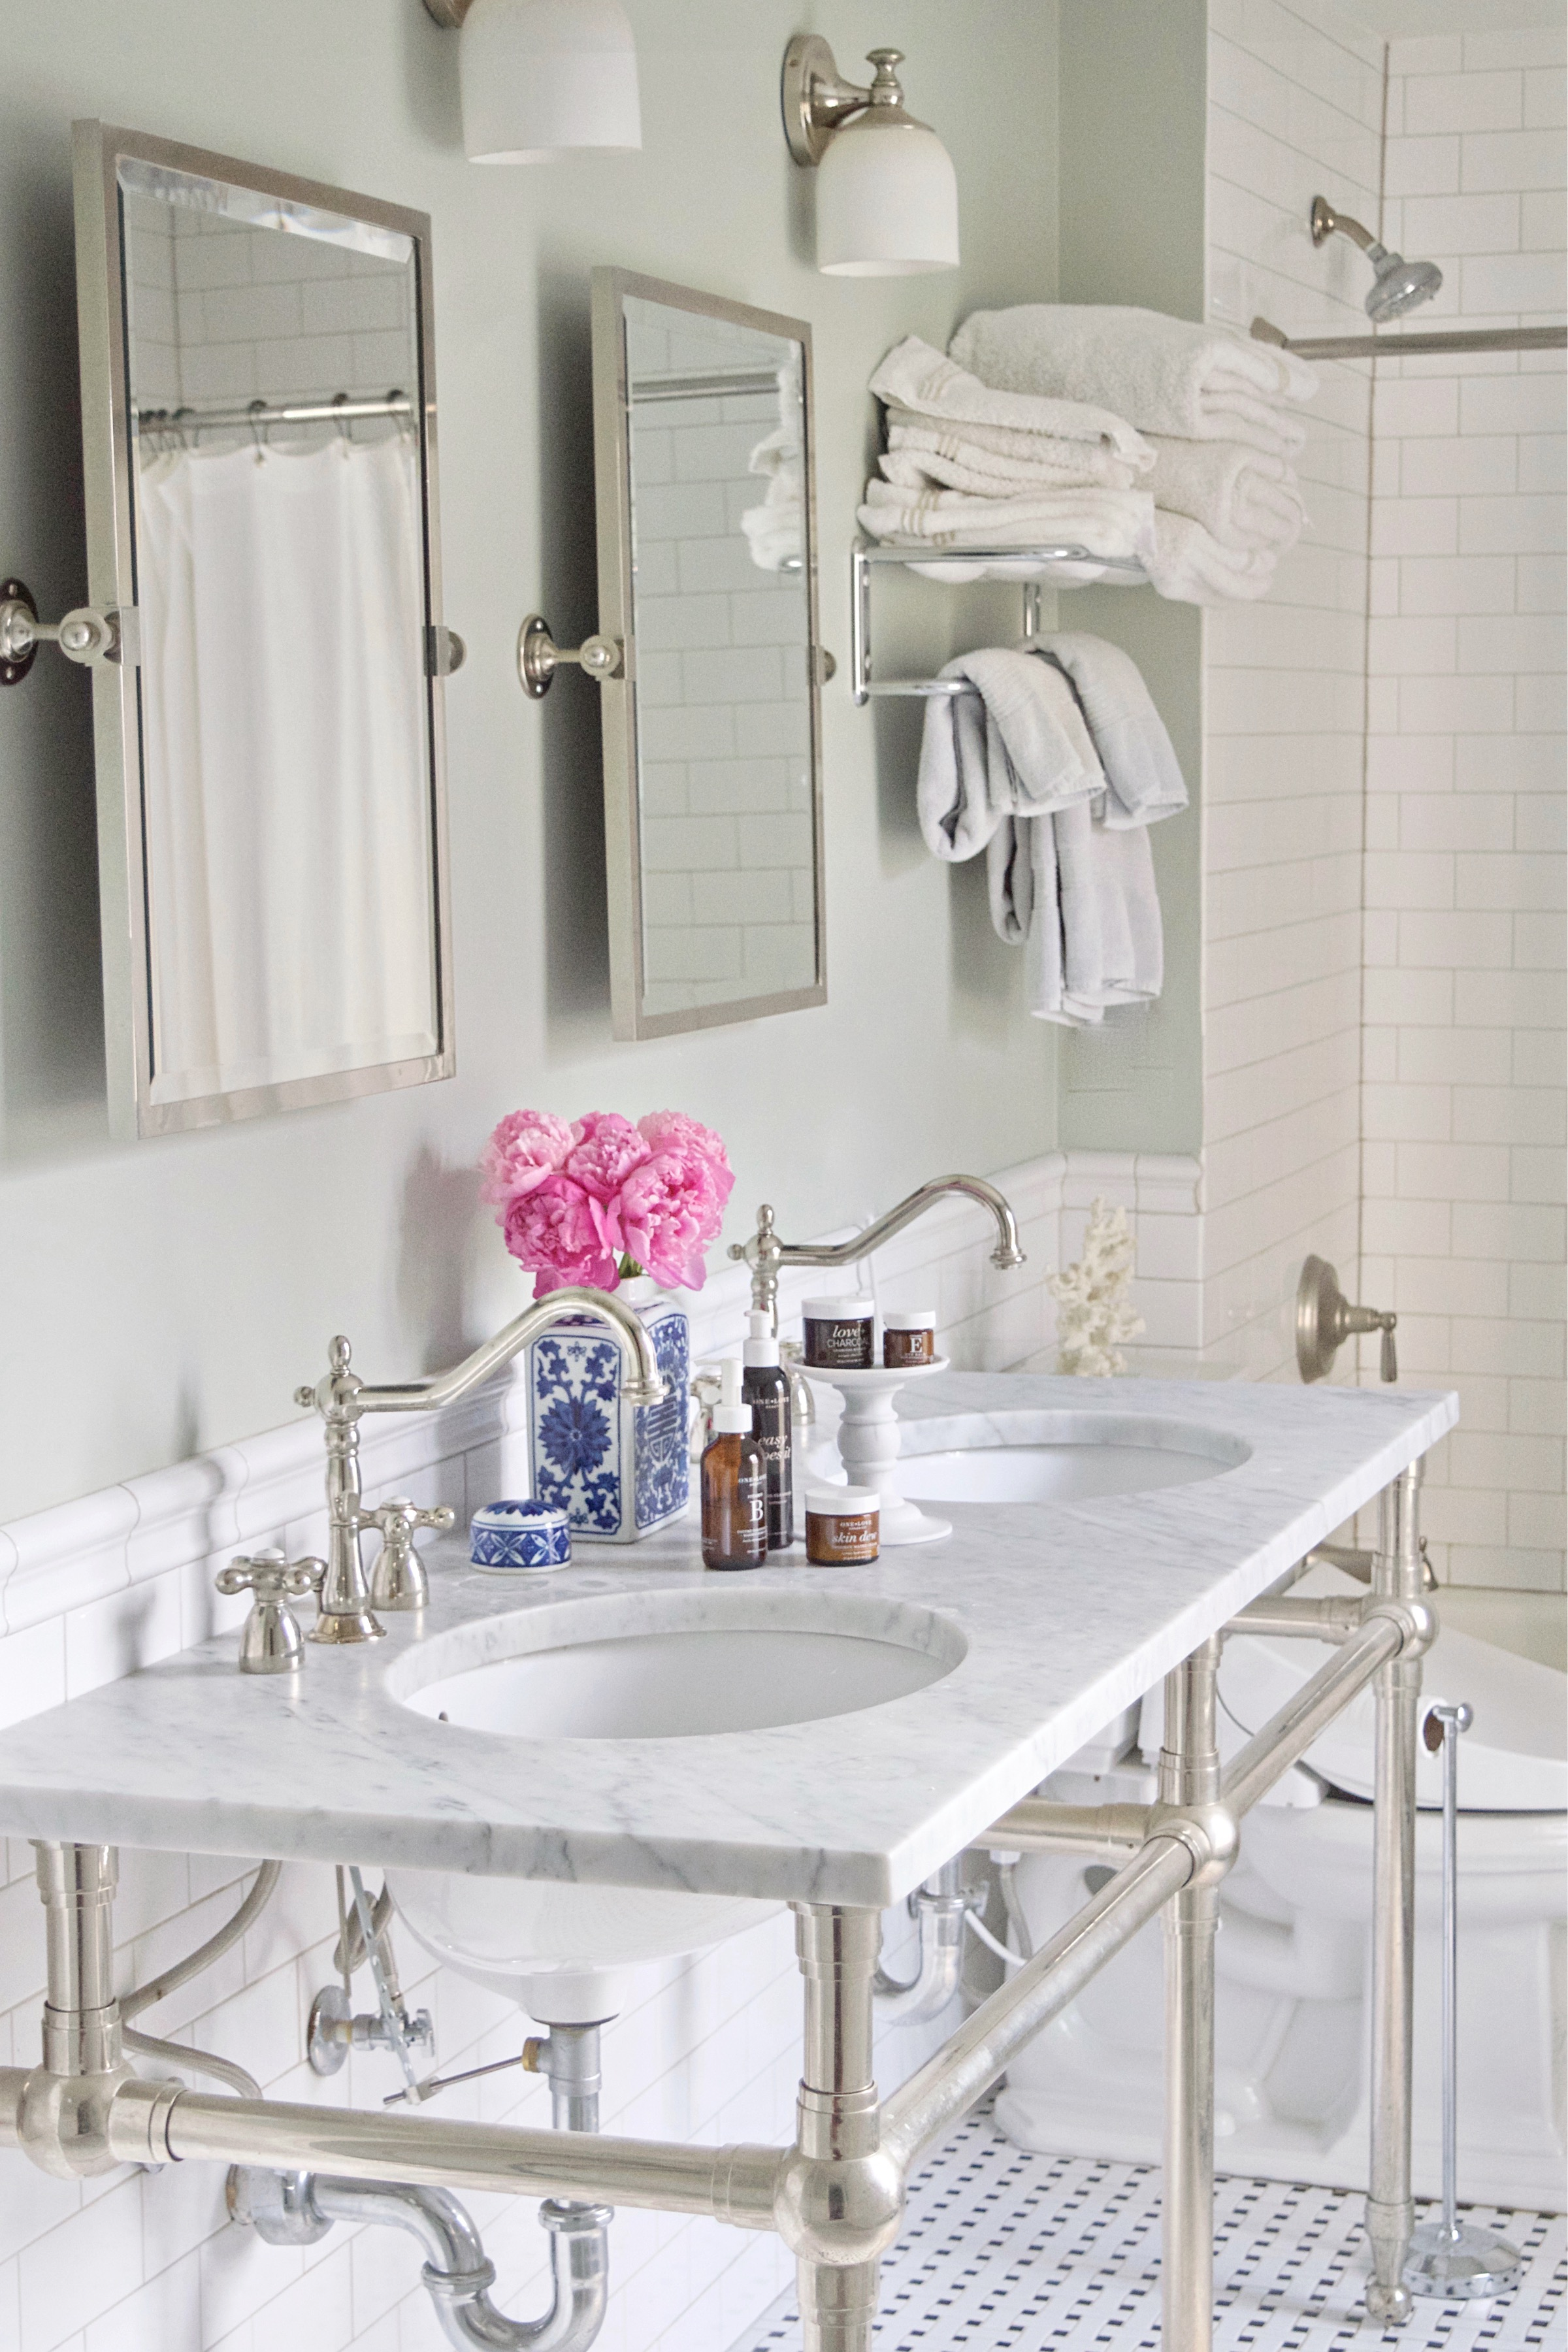 bright bathroom with skincare products